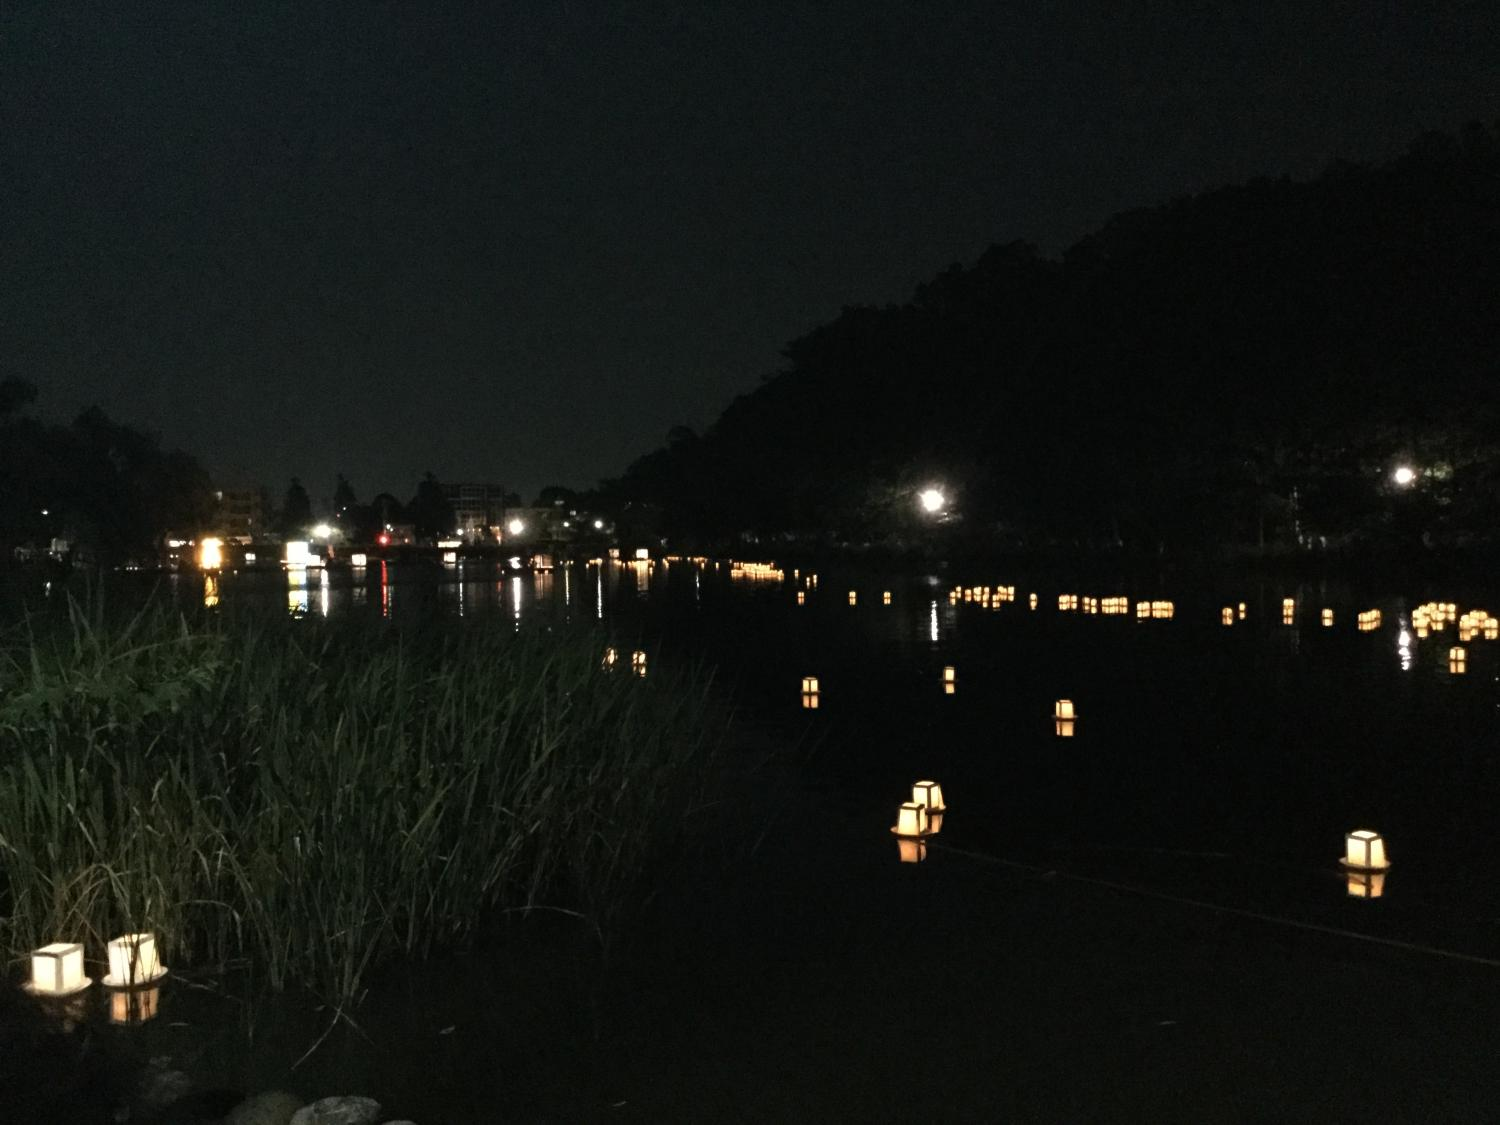 Transformation (?) image of annual boat pond